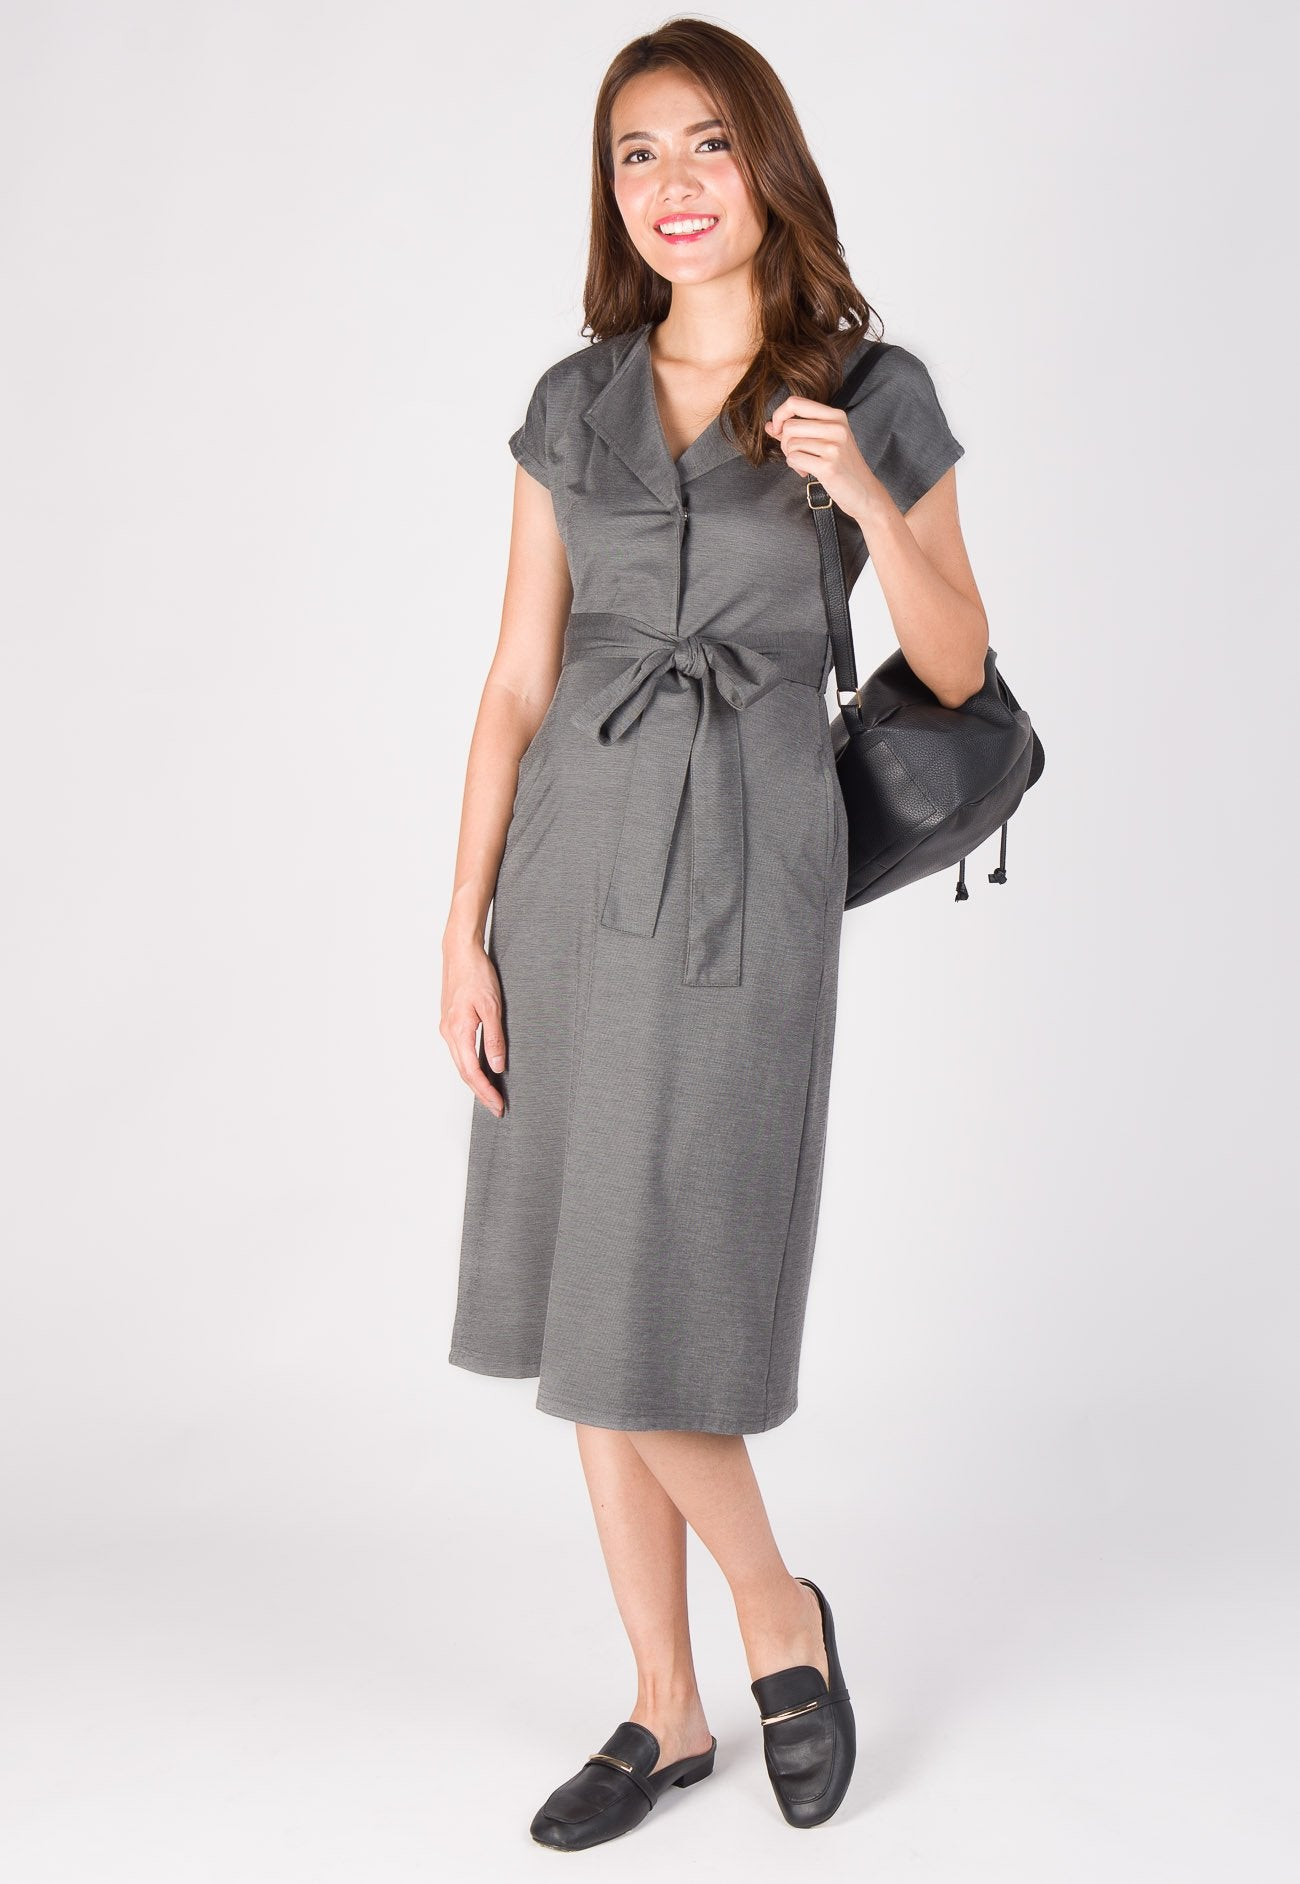 Revana Poet Collar Nursing Dress in Grey  by Jump Eat Cry - Maternity and nursing wear